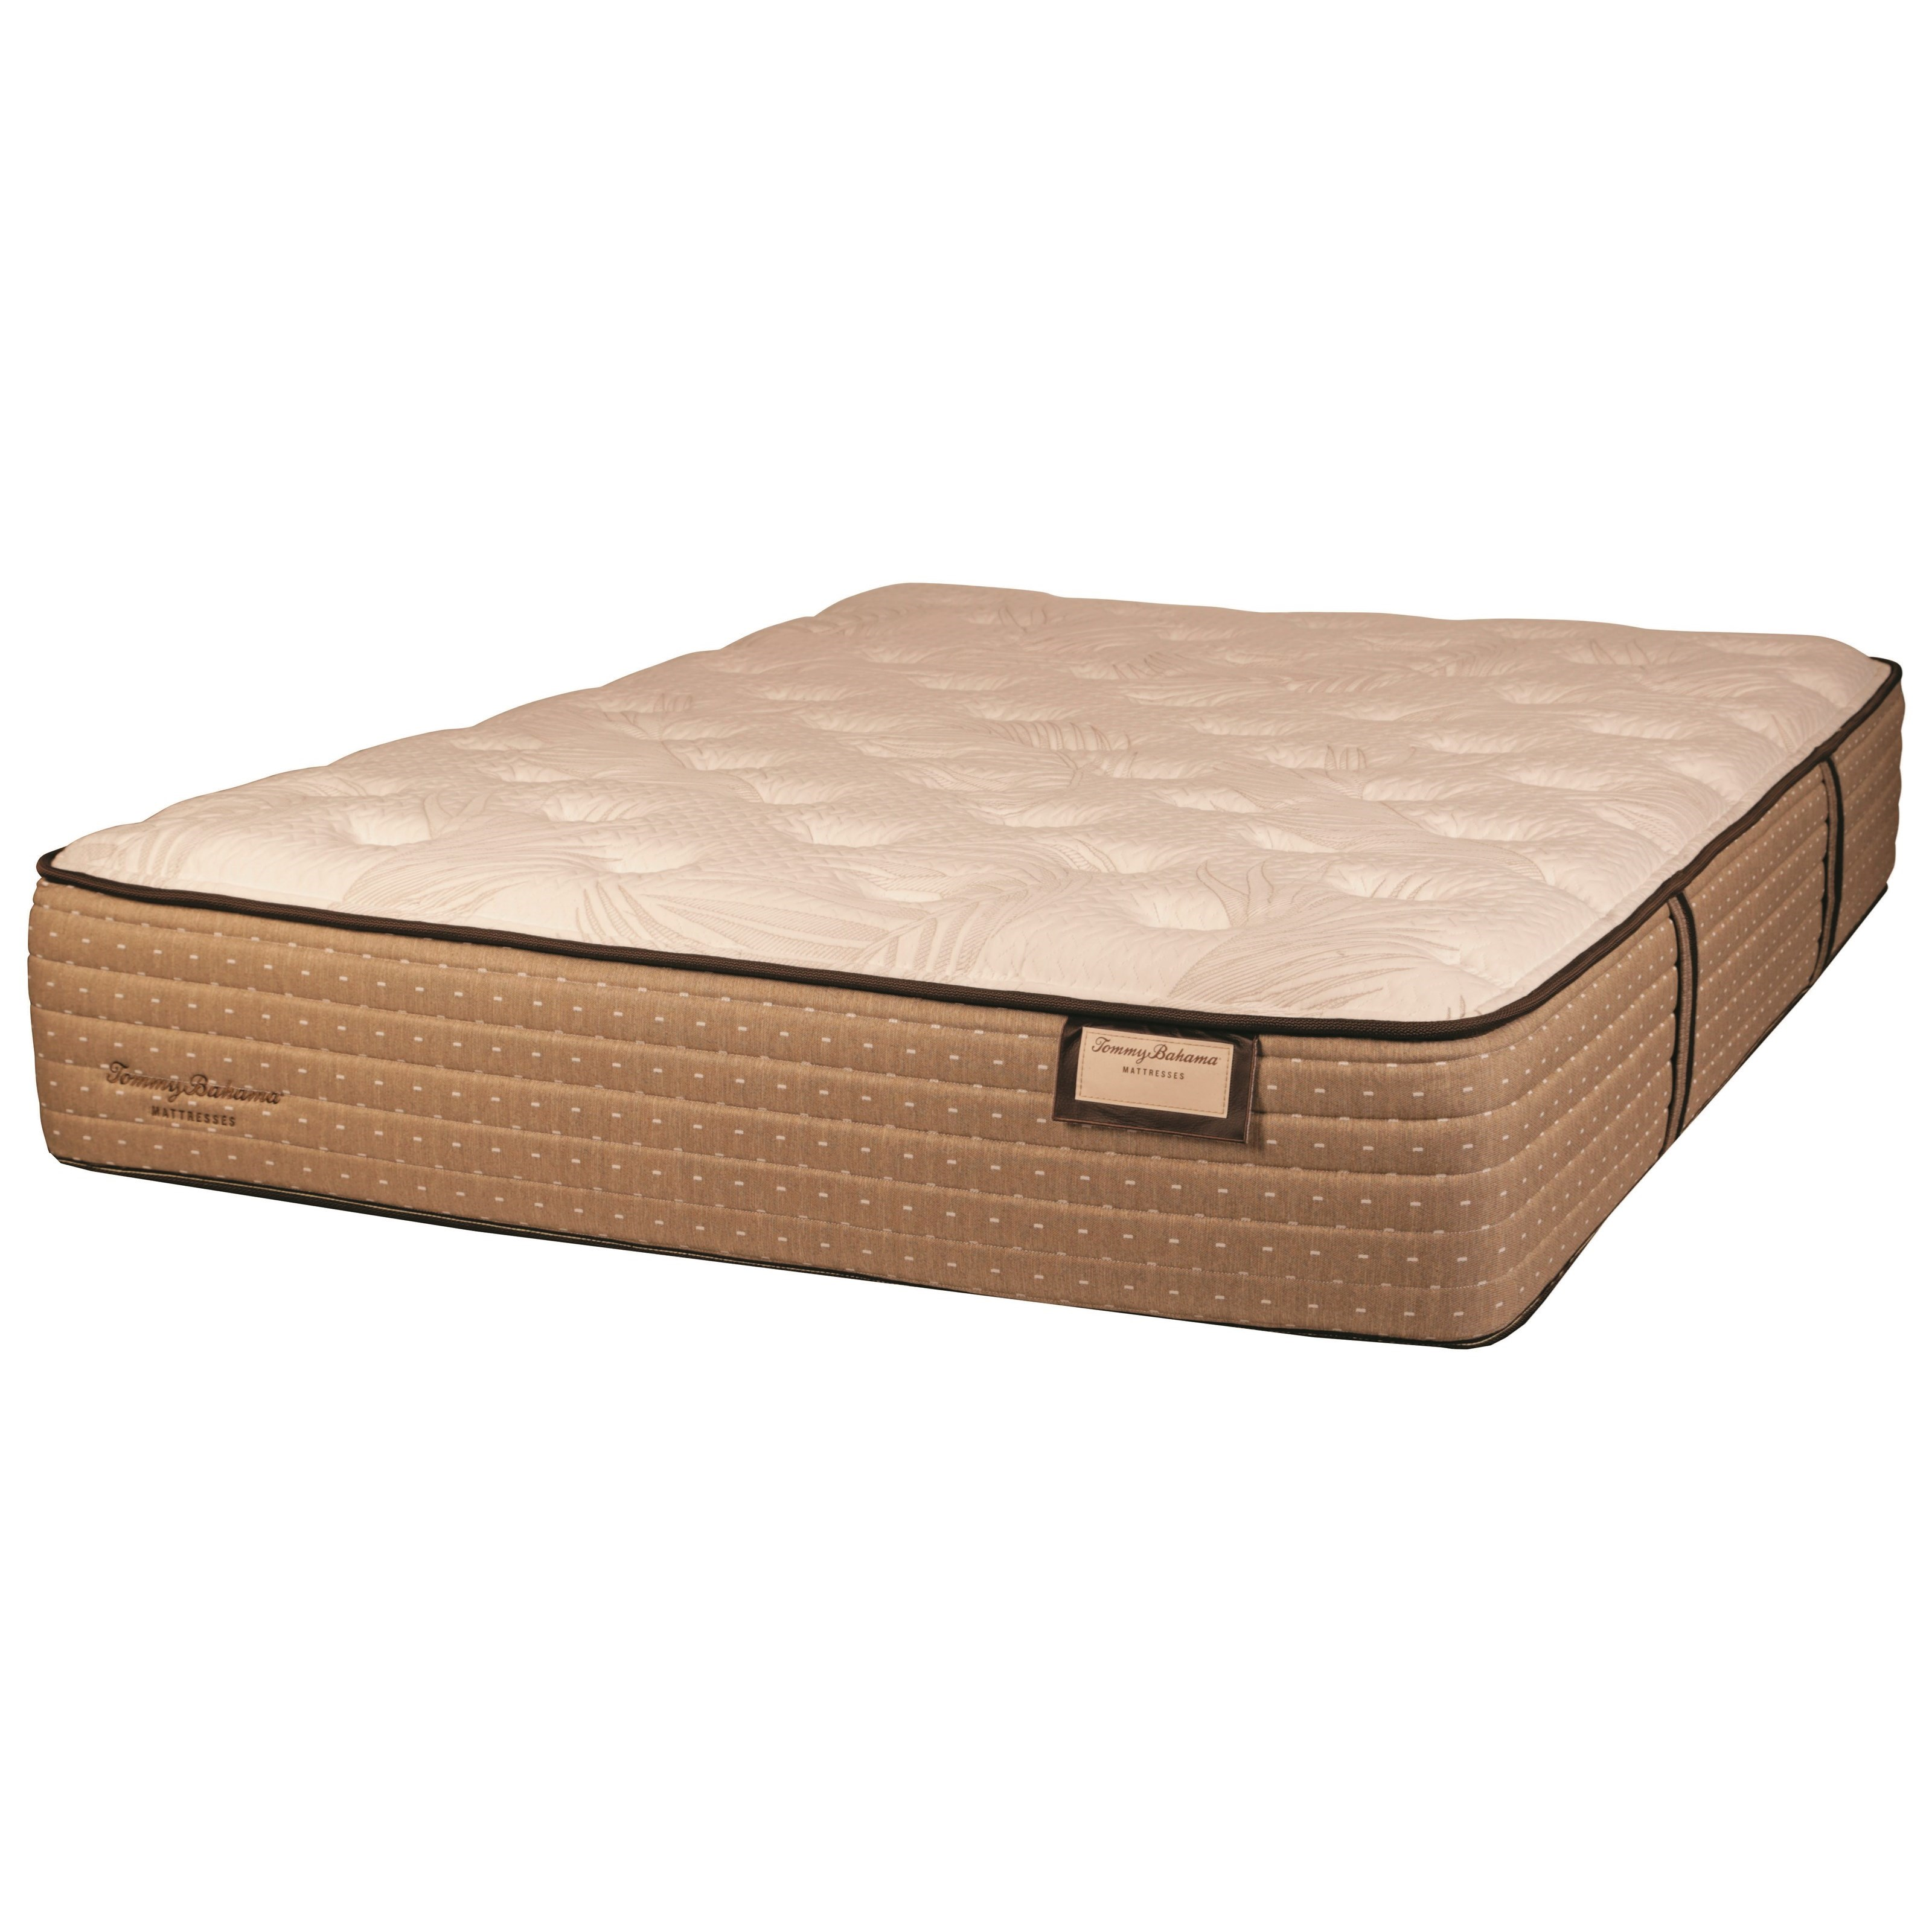 Tommy Bahama Shake the Sand Plush 6036 King Plush Luxry Mattress by Tommy Bahama Mattress at Baer's Furniture